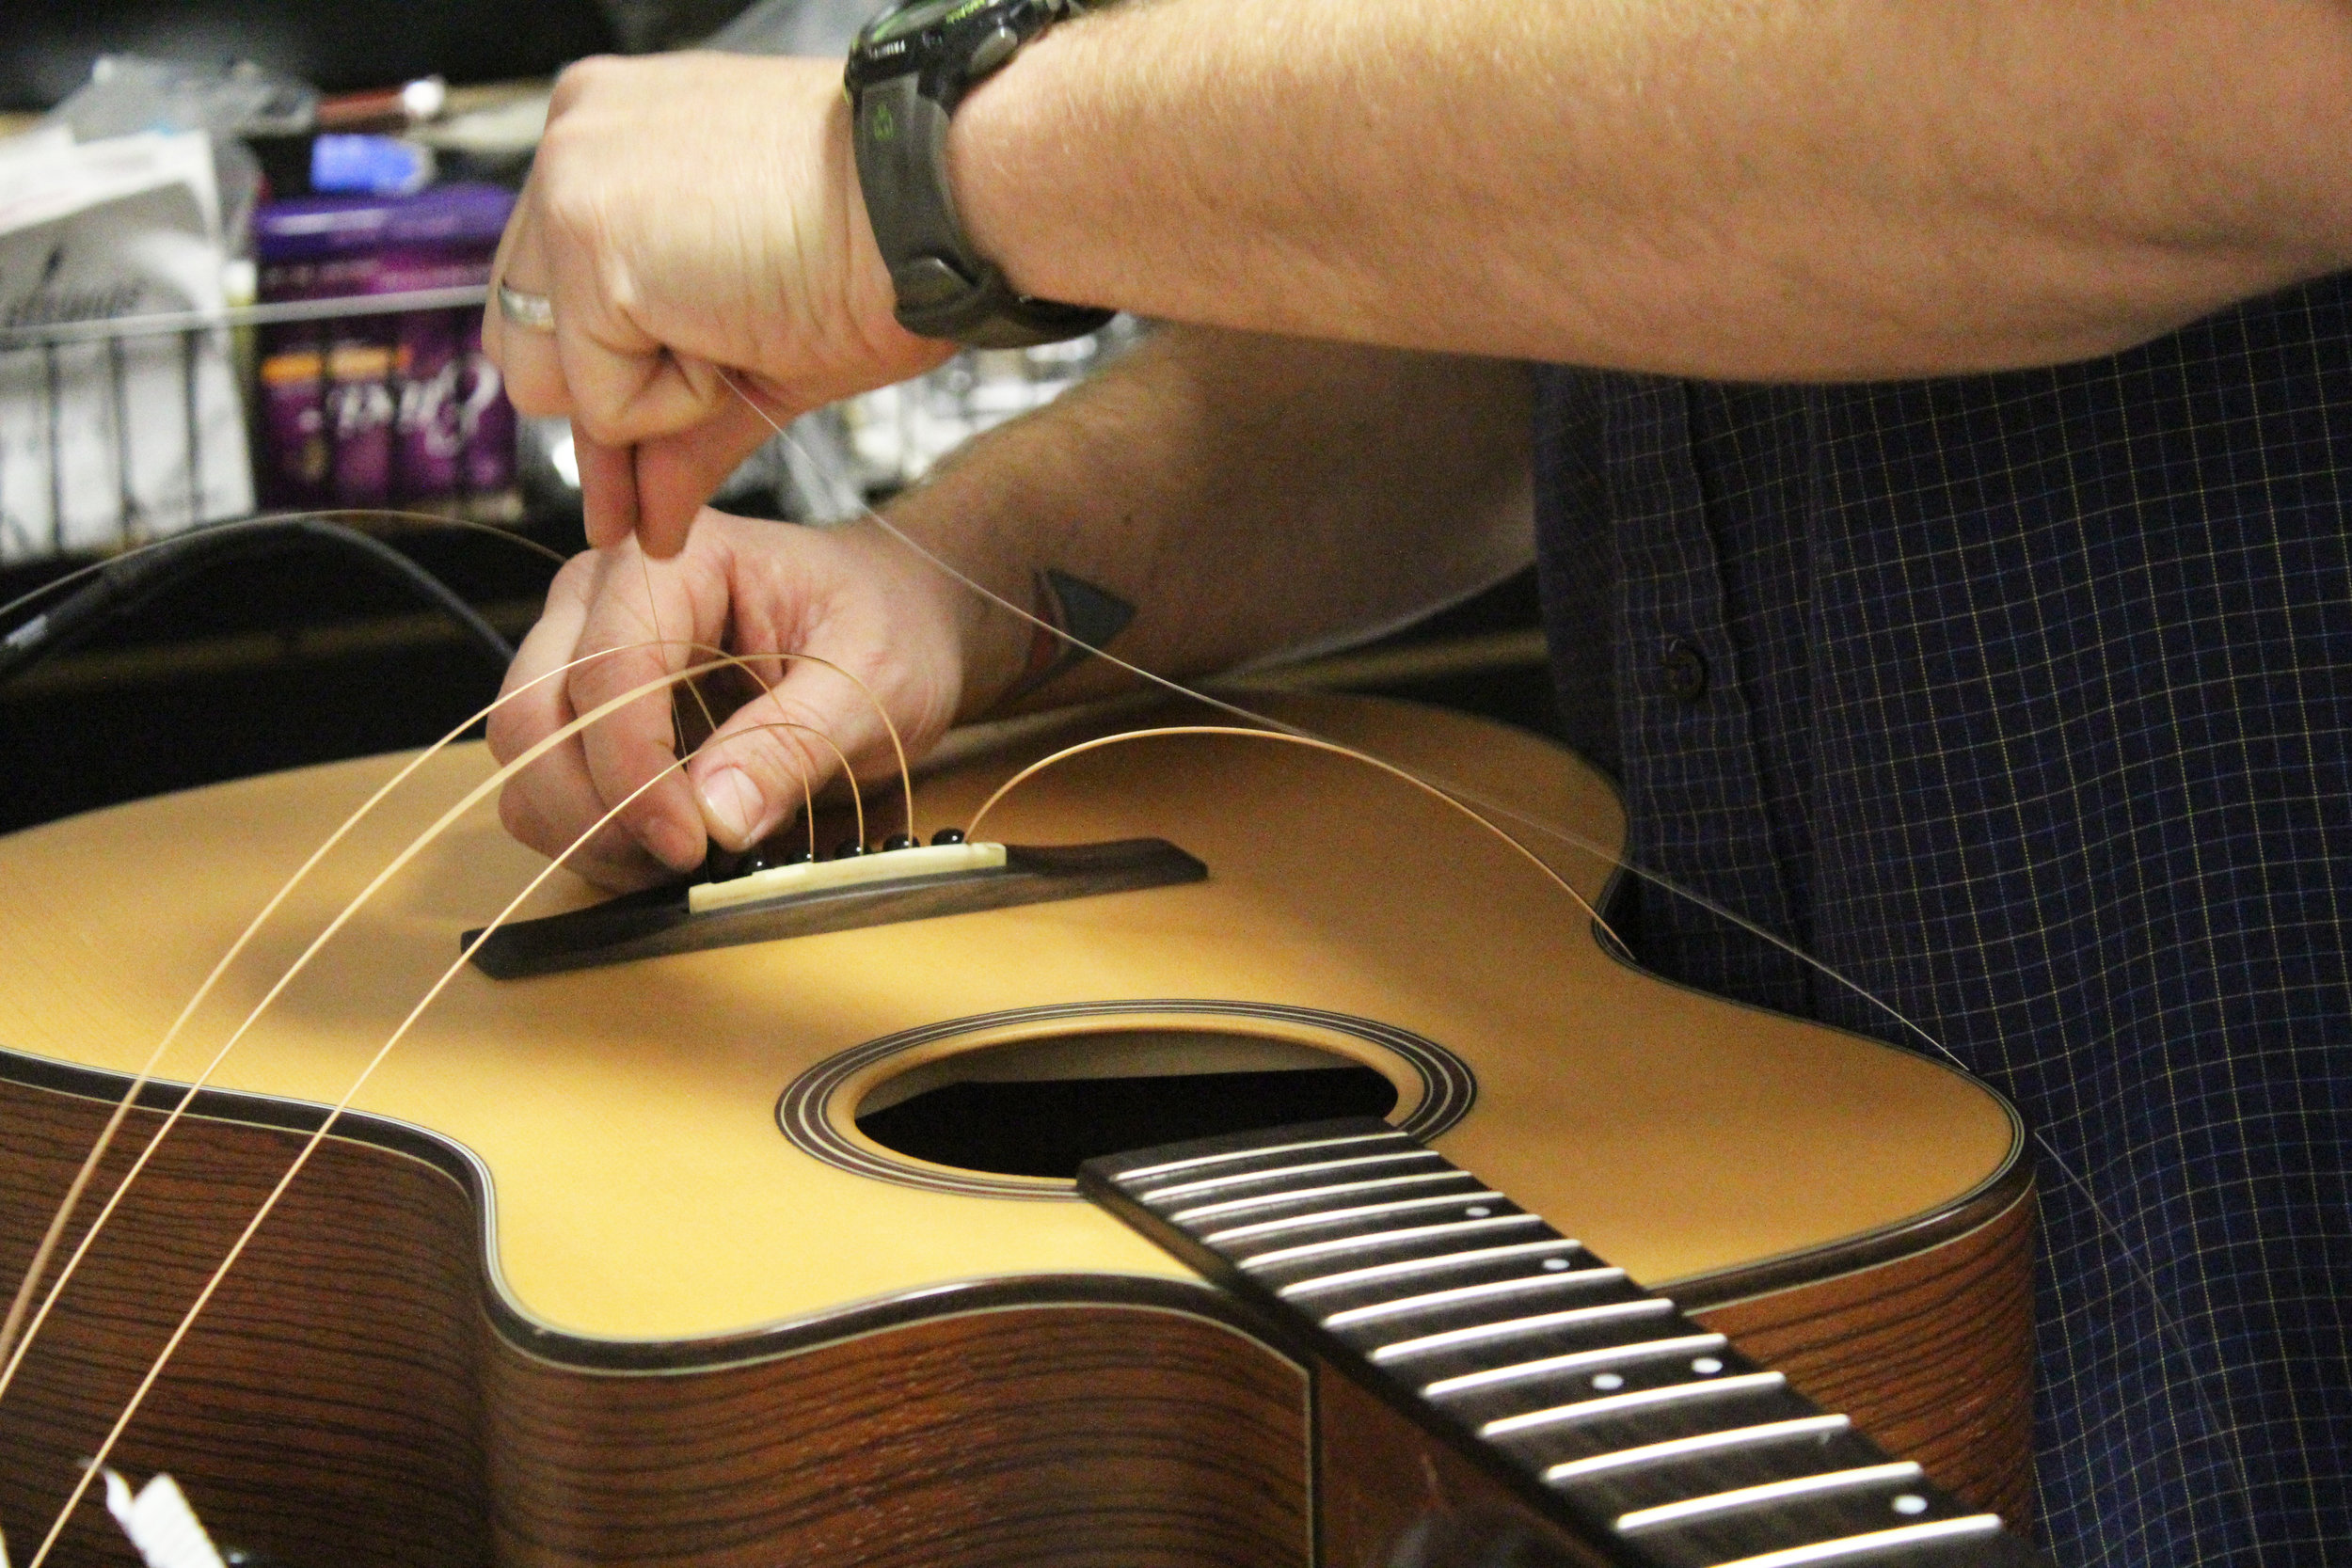 Brent Moore replaces guitar strings on Friday, Jan. 19, 2018, at CoMo Guitar Works in Columbia, Mo. Moore put in a taller bridge on the guitar so the strings will have more room.